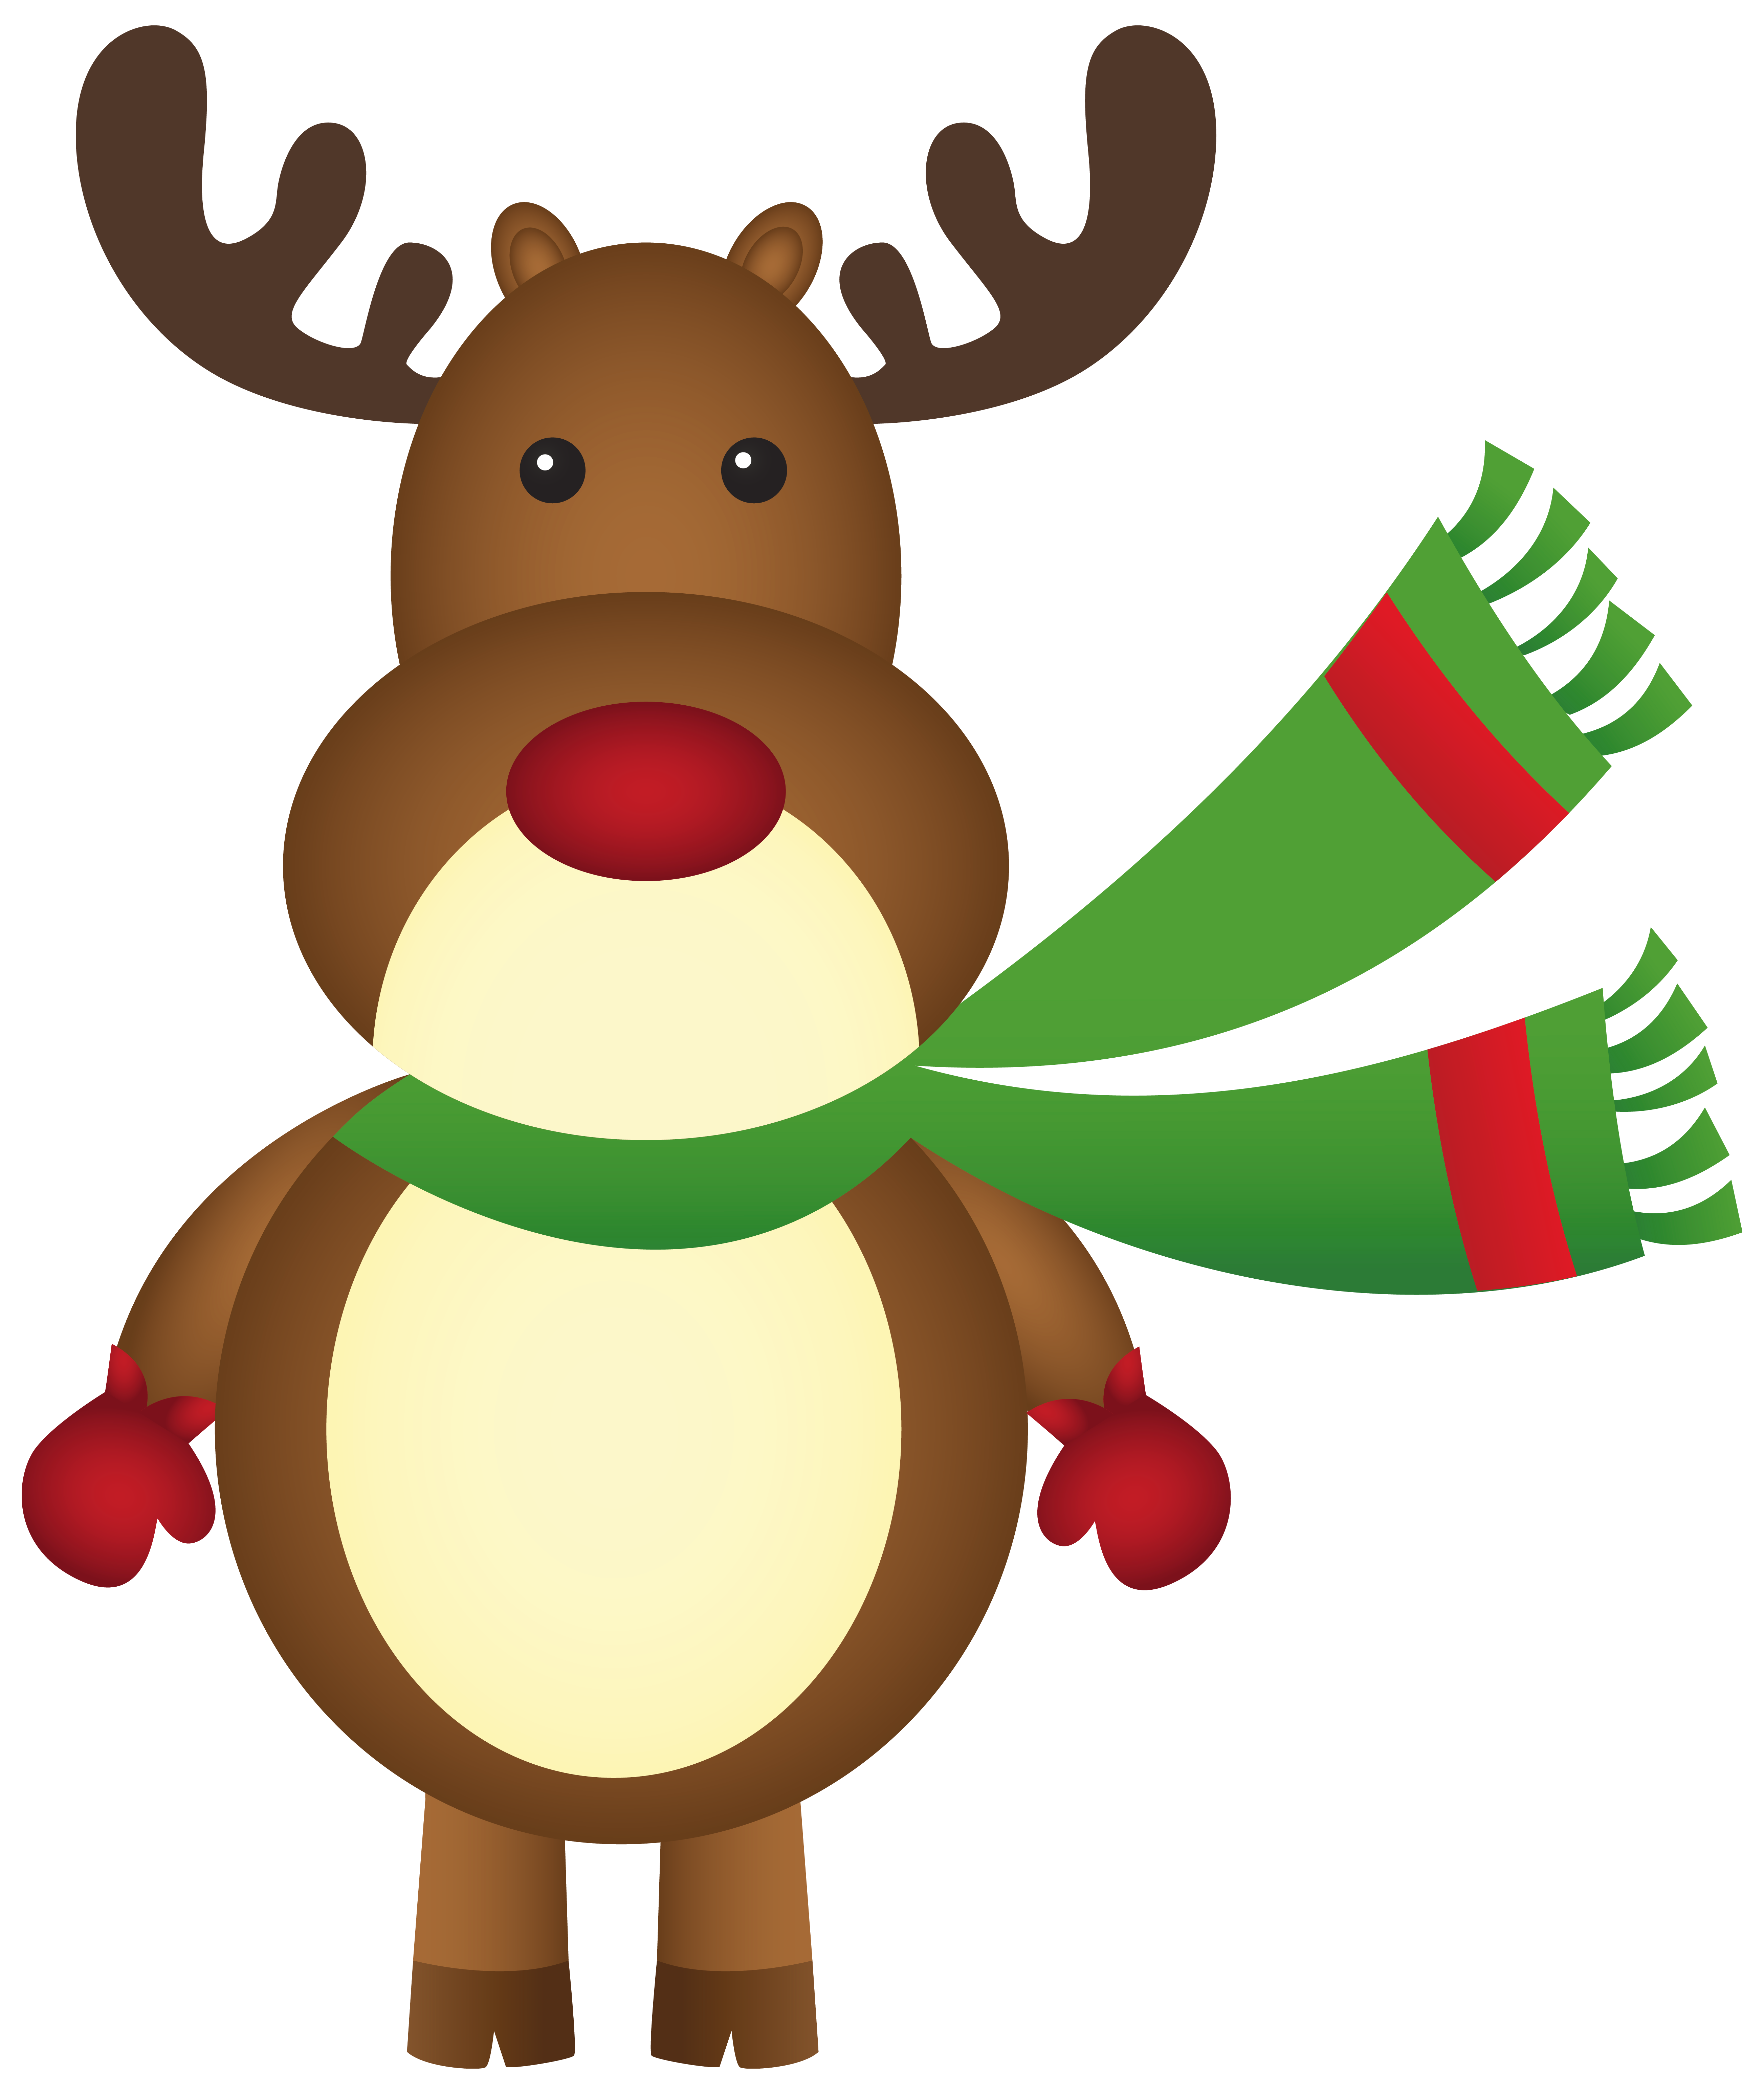 Christmas Rudolph Png - Christmas Rudolph with Scarf PNG Clipart Image | Gallery ...